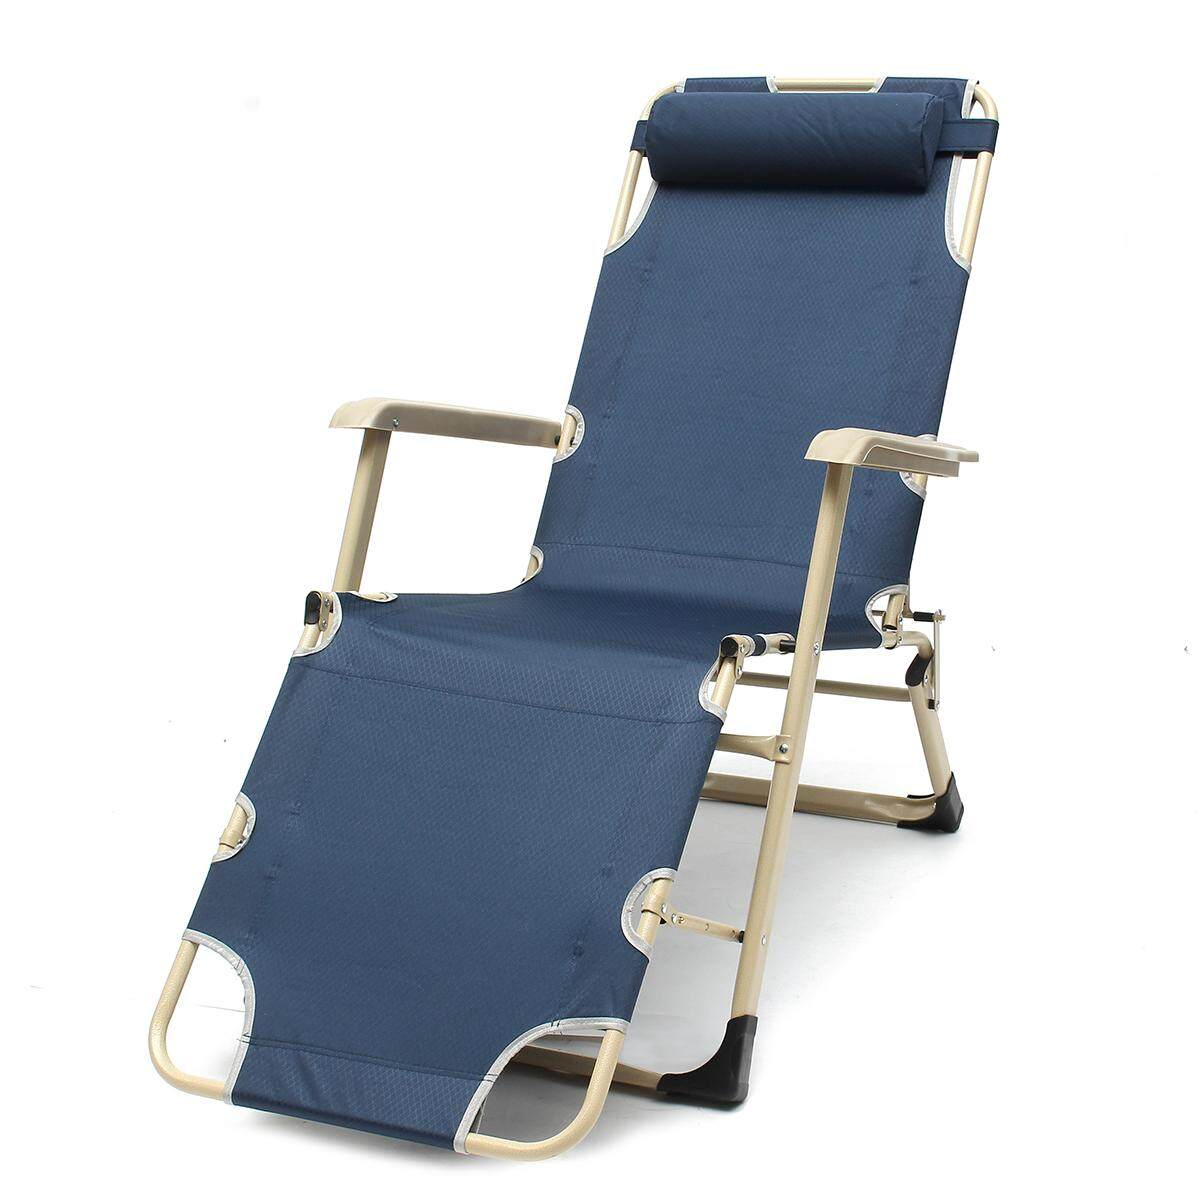 Reclining Deck Lounge Sun Beach Chair Outdoor Folding Camping Tanning Pool Navy - intl